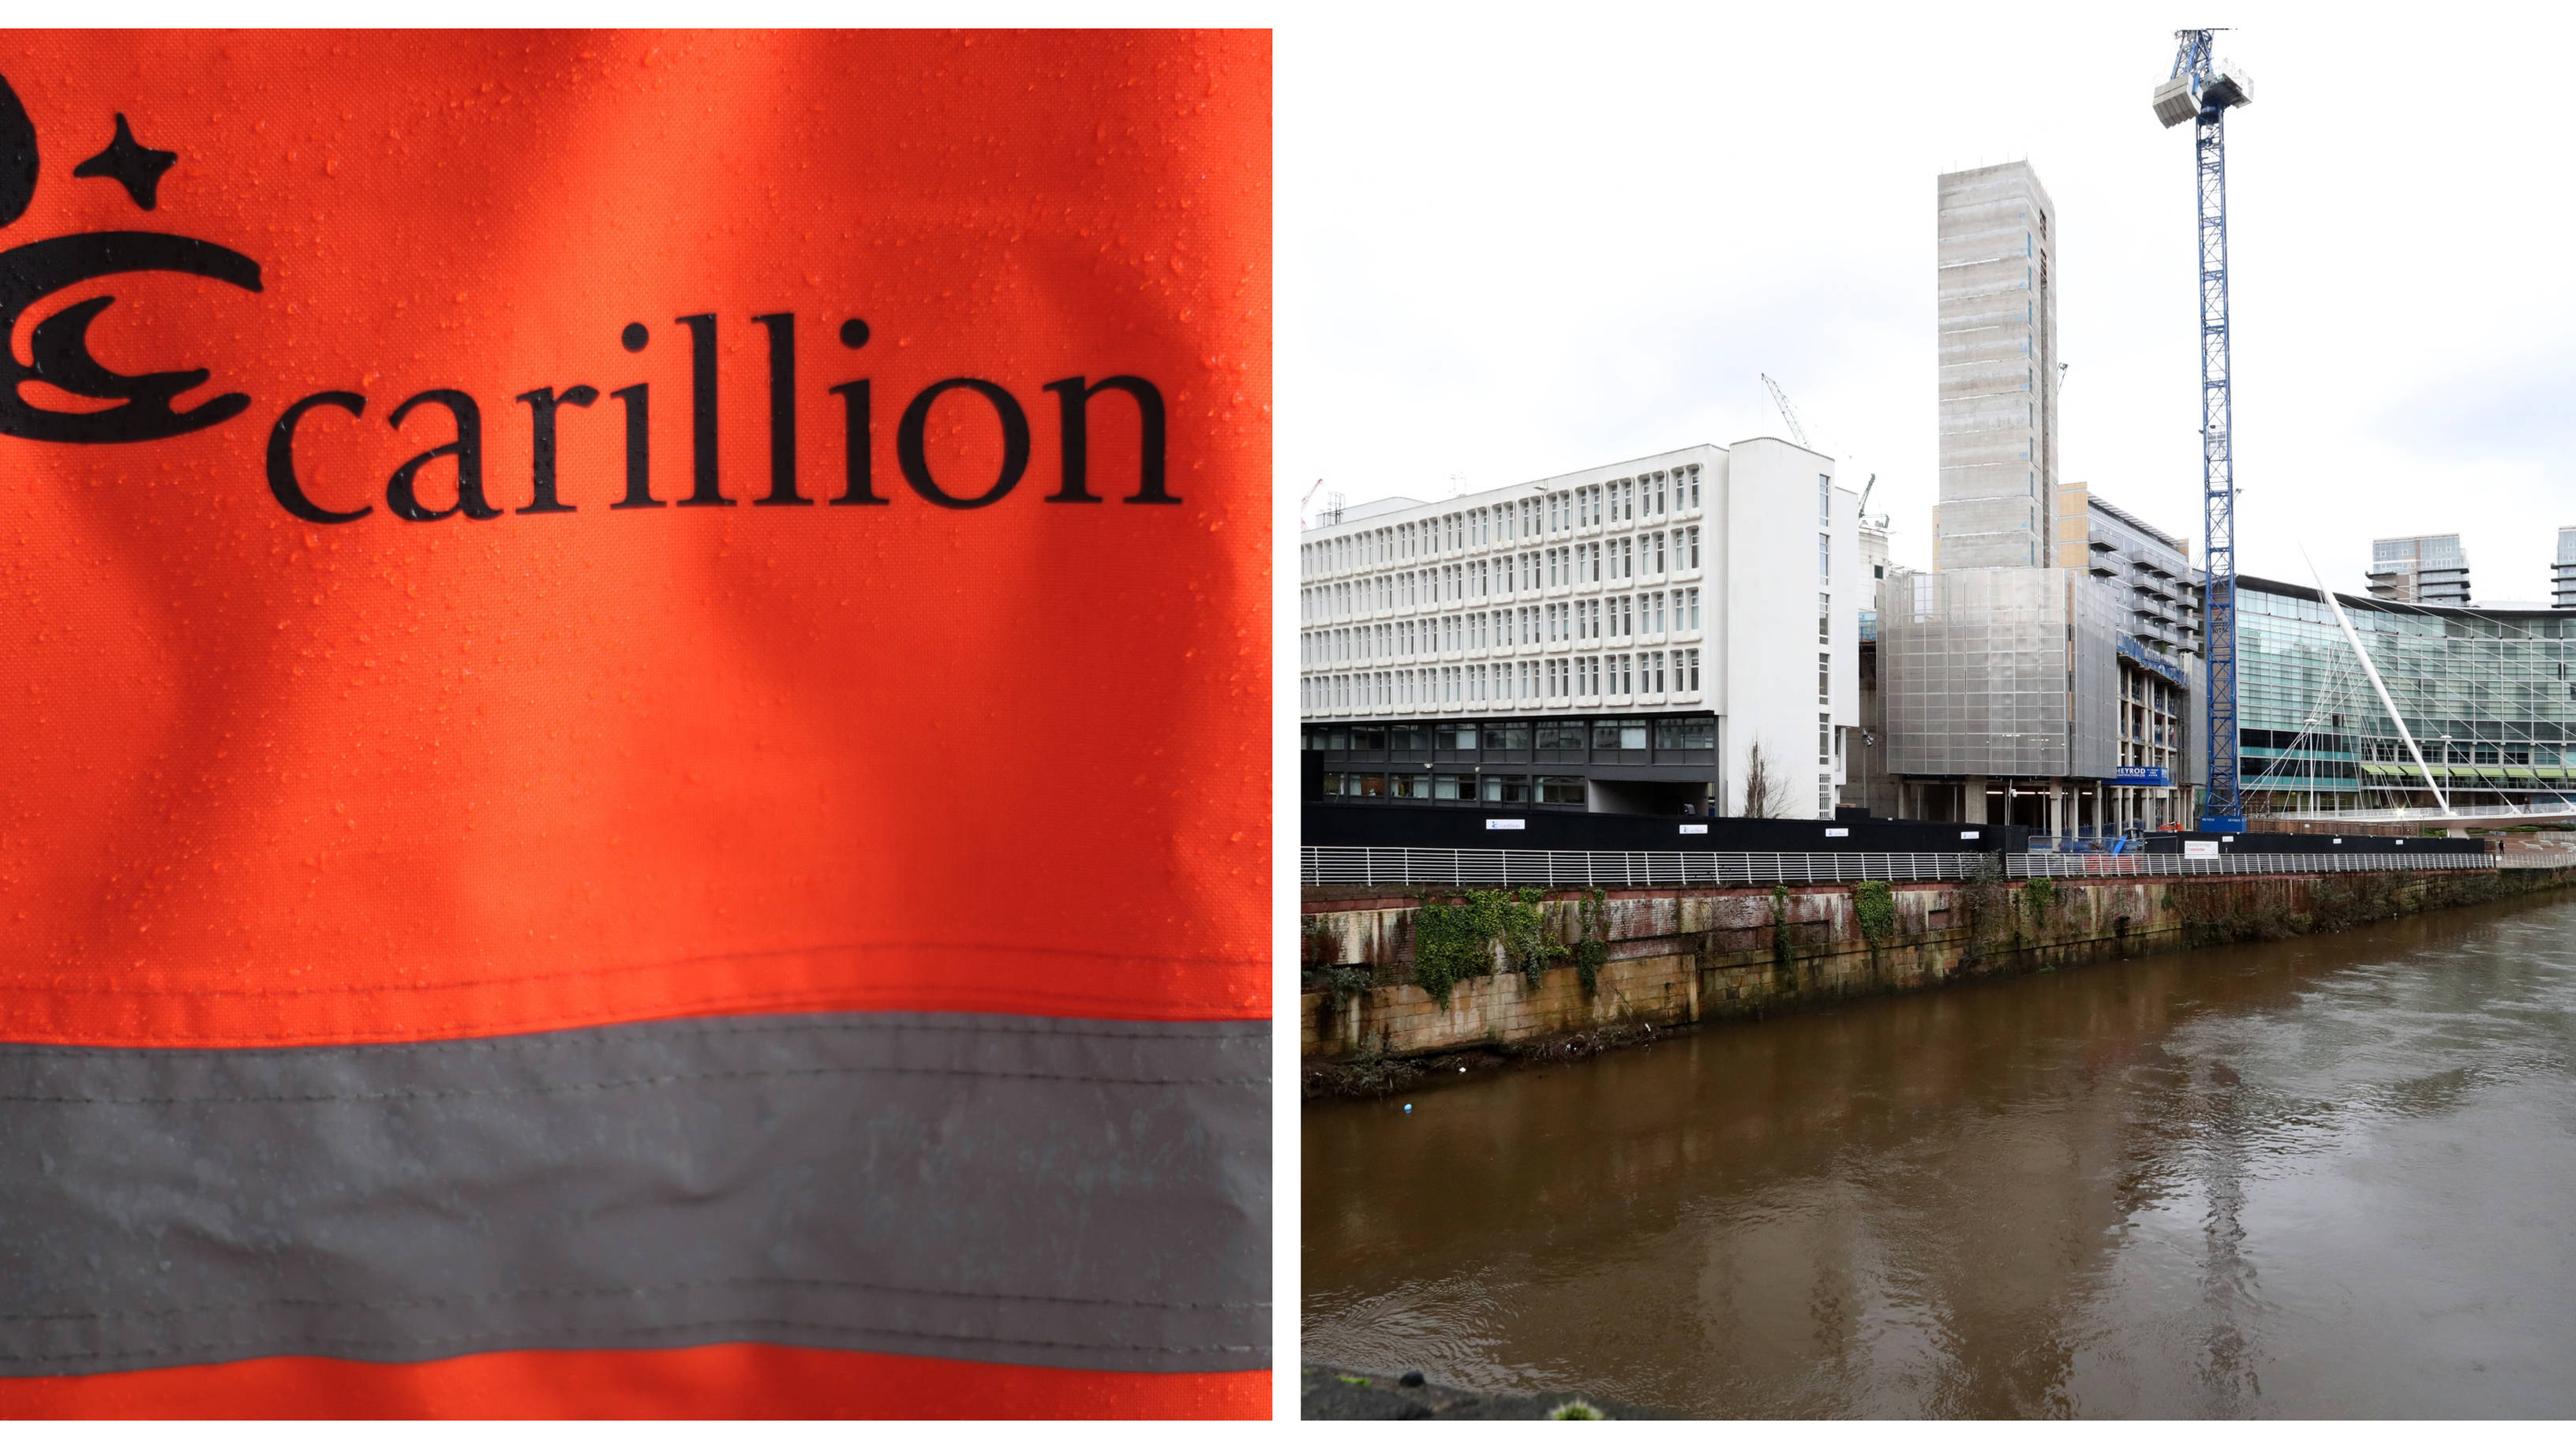 New hospitals delayed for years because of Carillion collapse